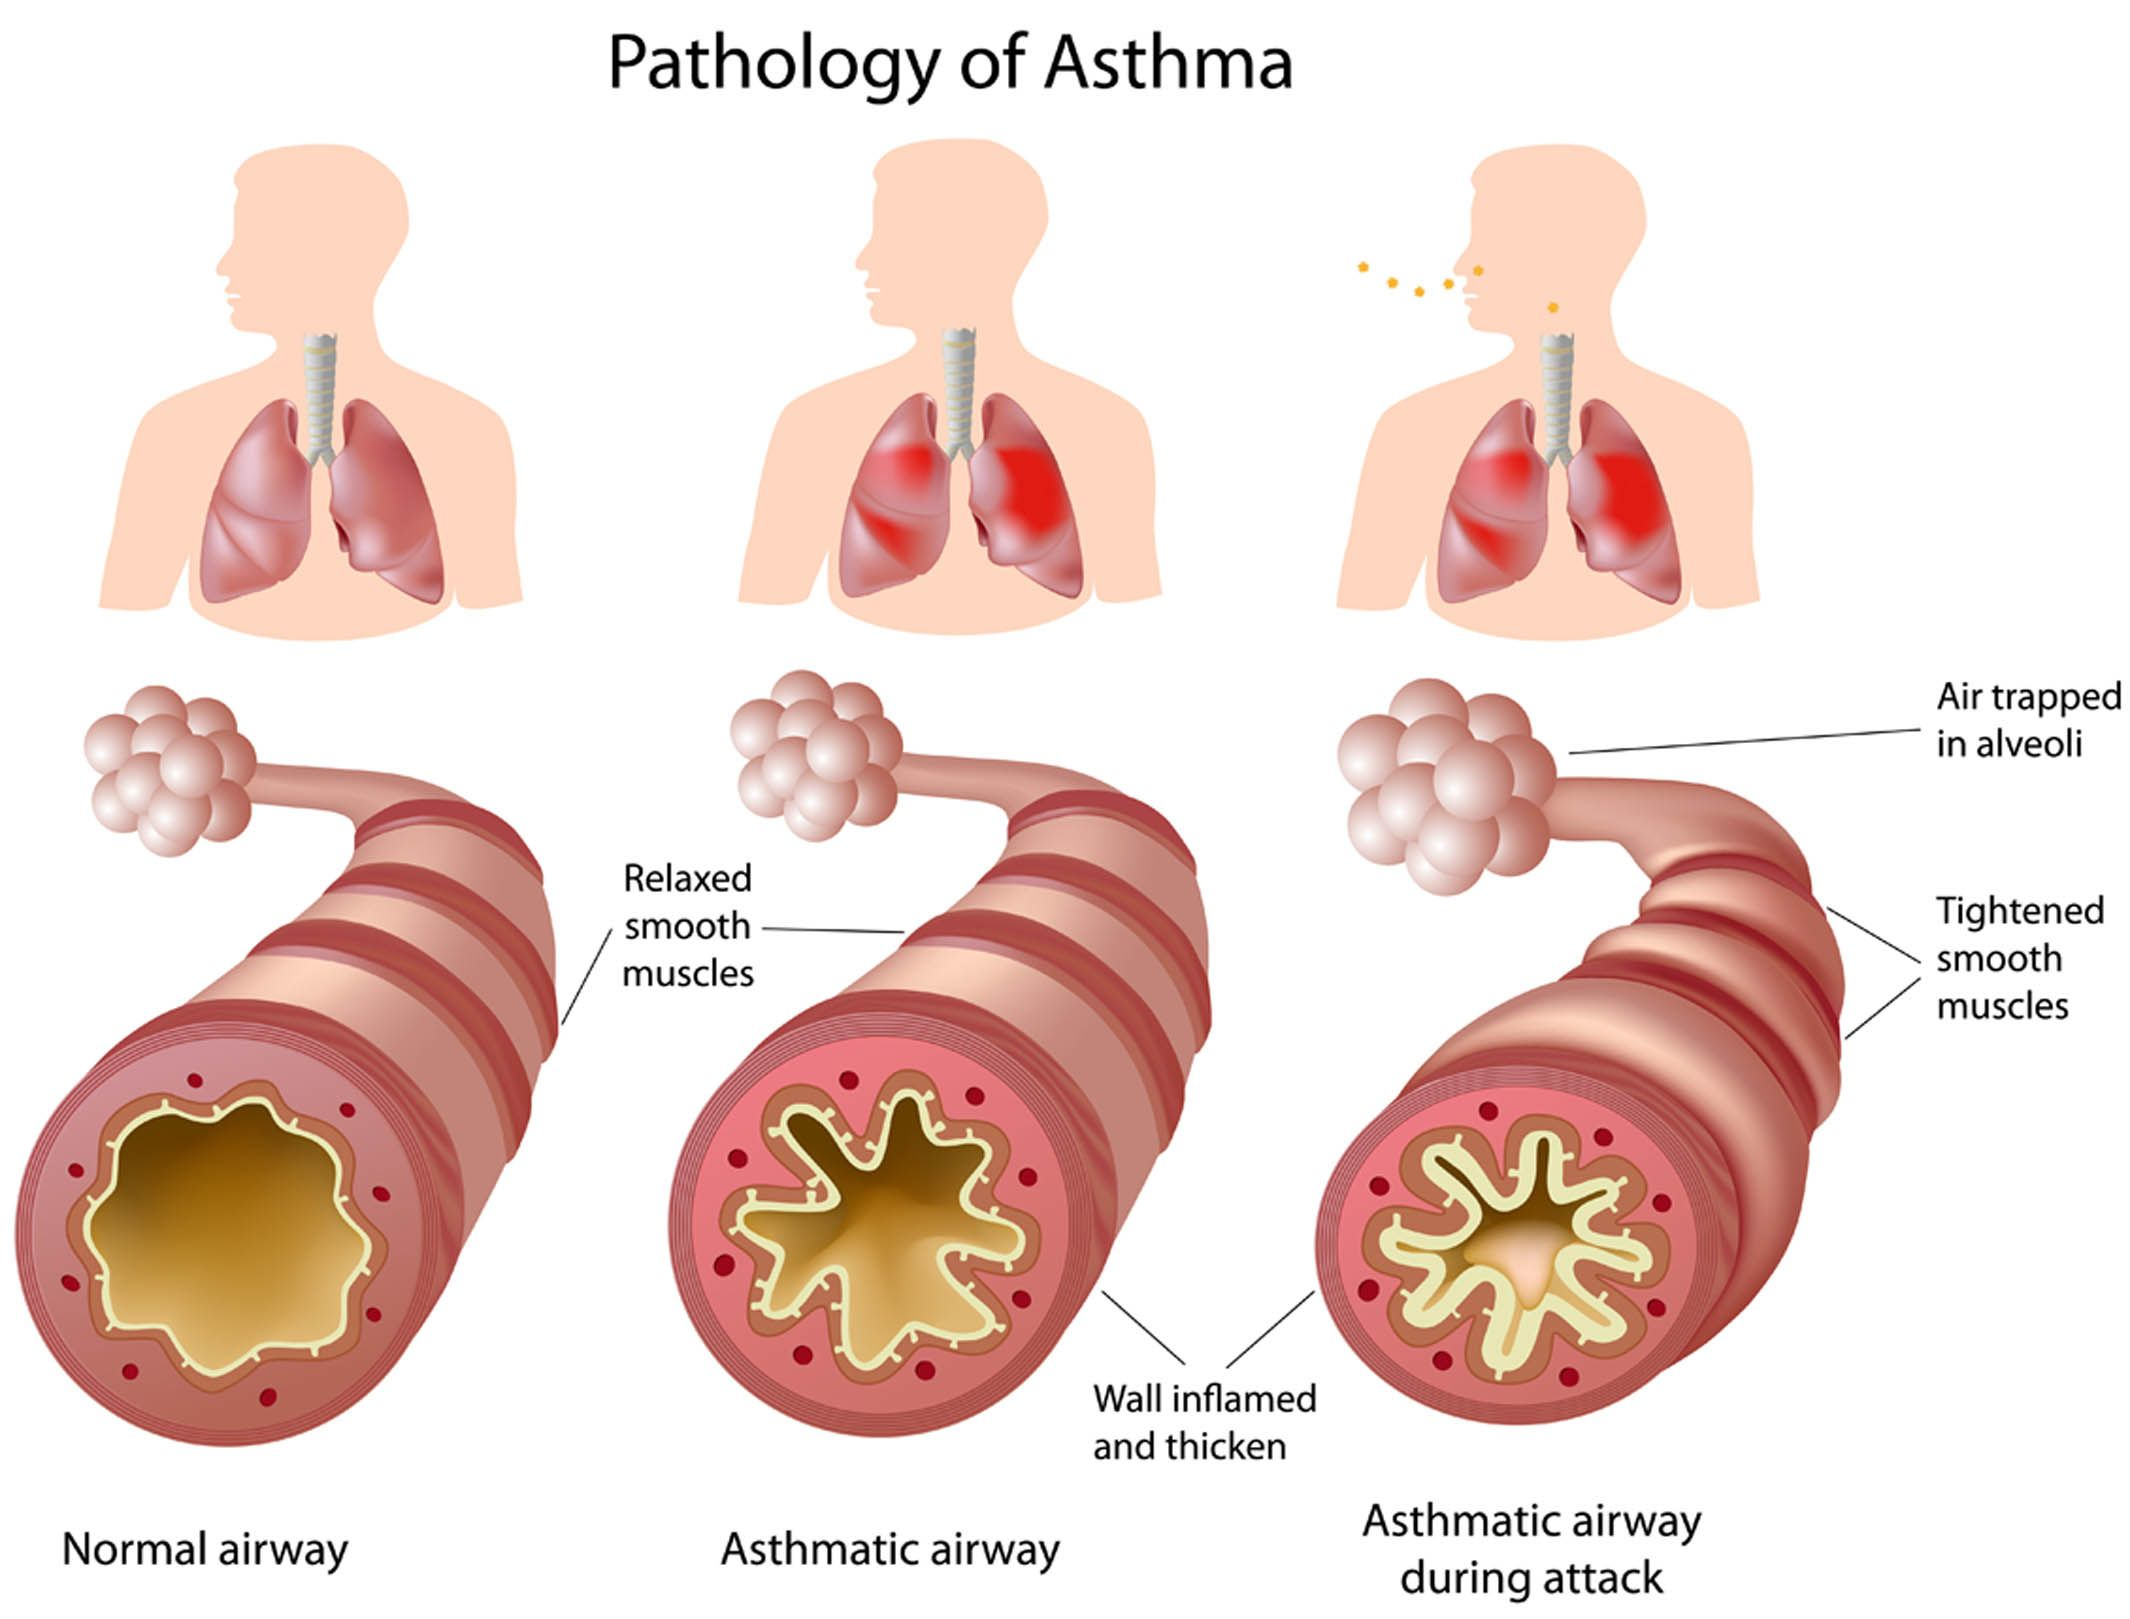 an analysis of a research paper on asthma a chronic illness which affects many people Asthma is a chronic disease that affects the airways of the lungs during an asthma attack, airways (tubes that carry air to your lungs) become swollen, making it hard to breathe 1, 2 as the walls of the airways swell, they narrow, and less air gets in and out of the lungs.